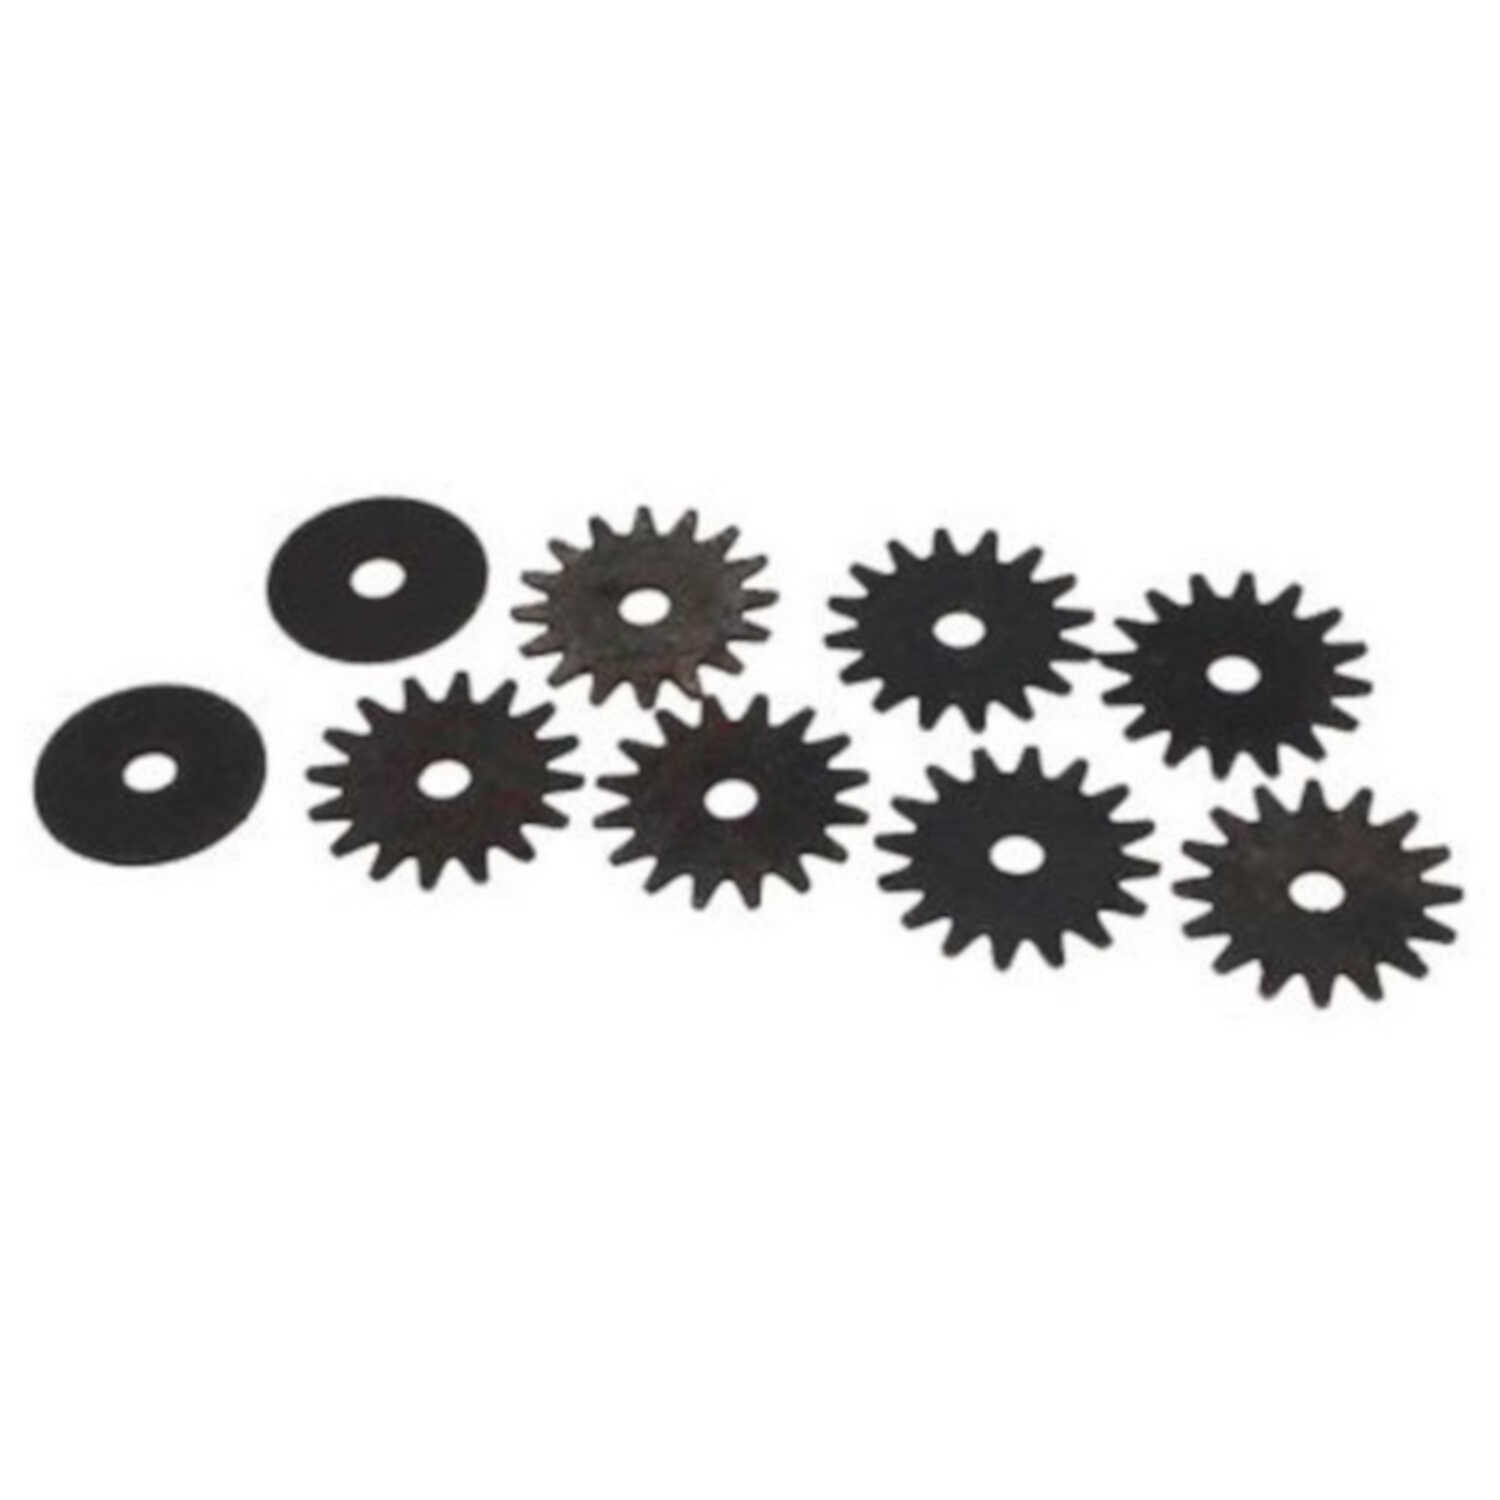 Forney  1-1/4 in. Dia. x 1/4 in. thick  Grinding Wheel  9 pc.